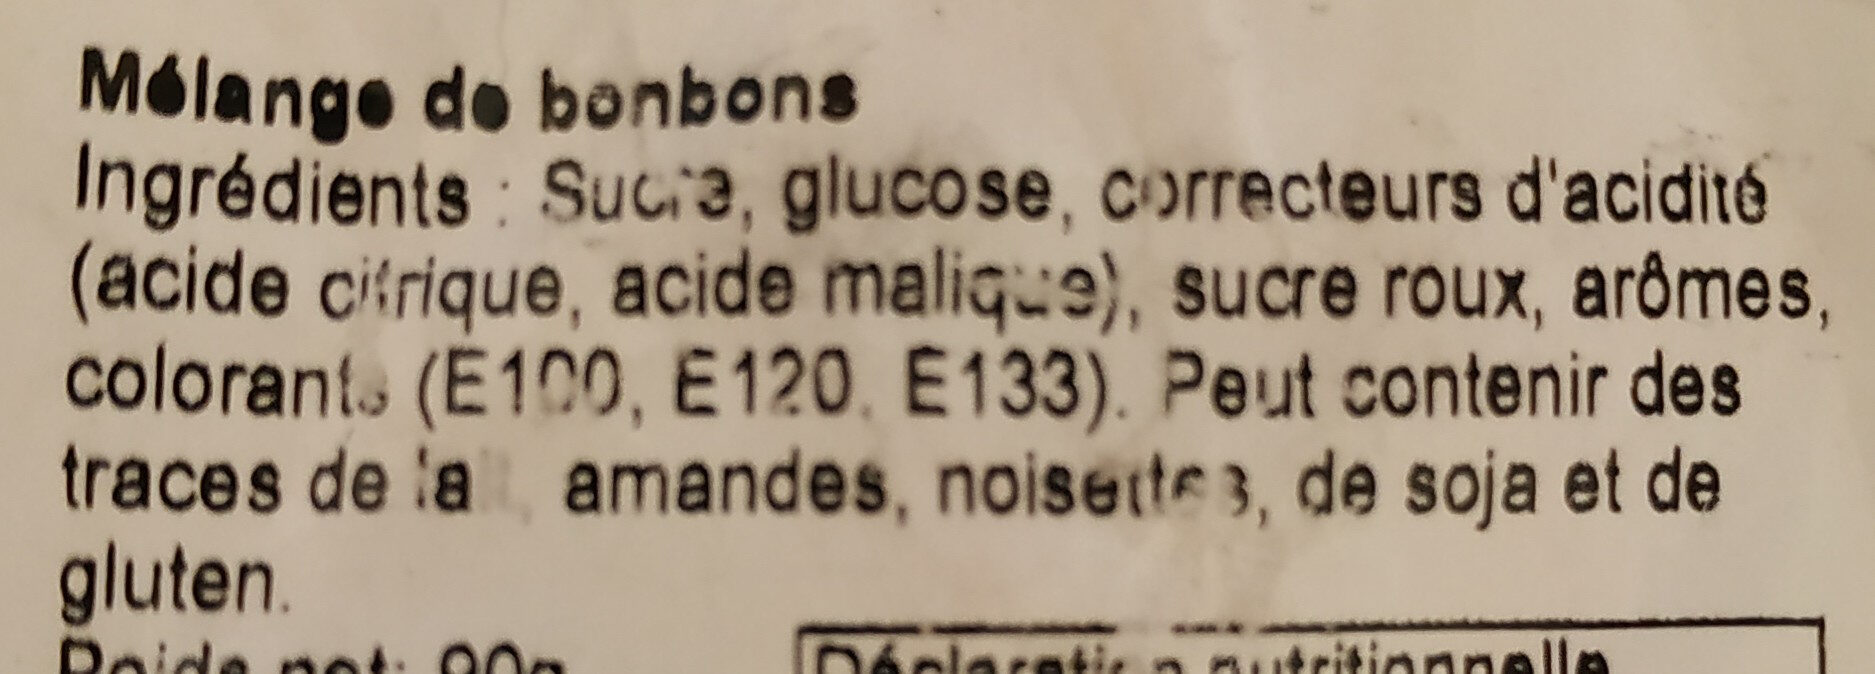 Mélange de bonbons - Ingredients